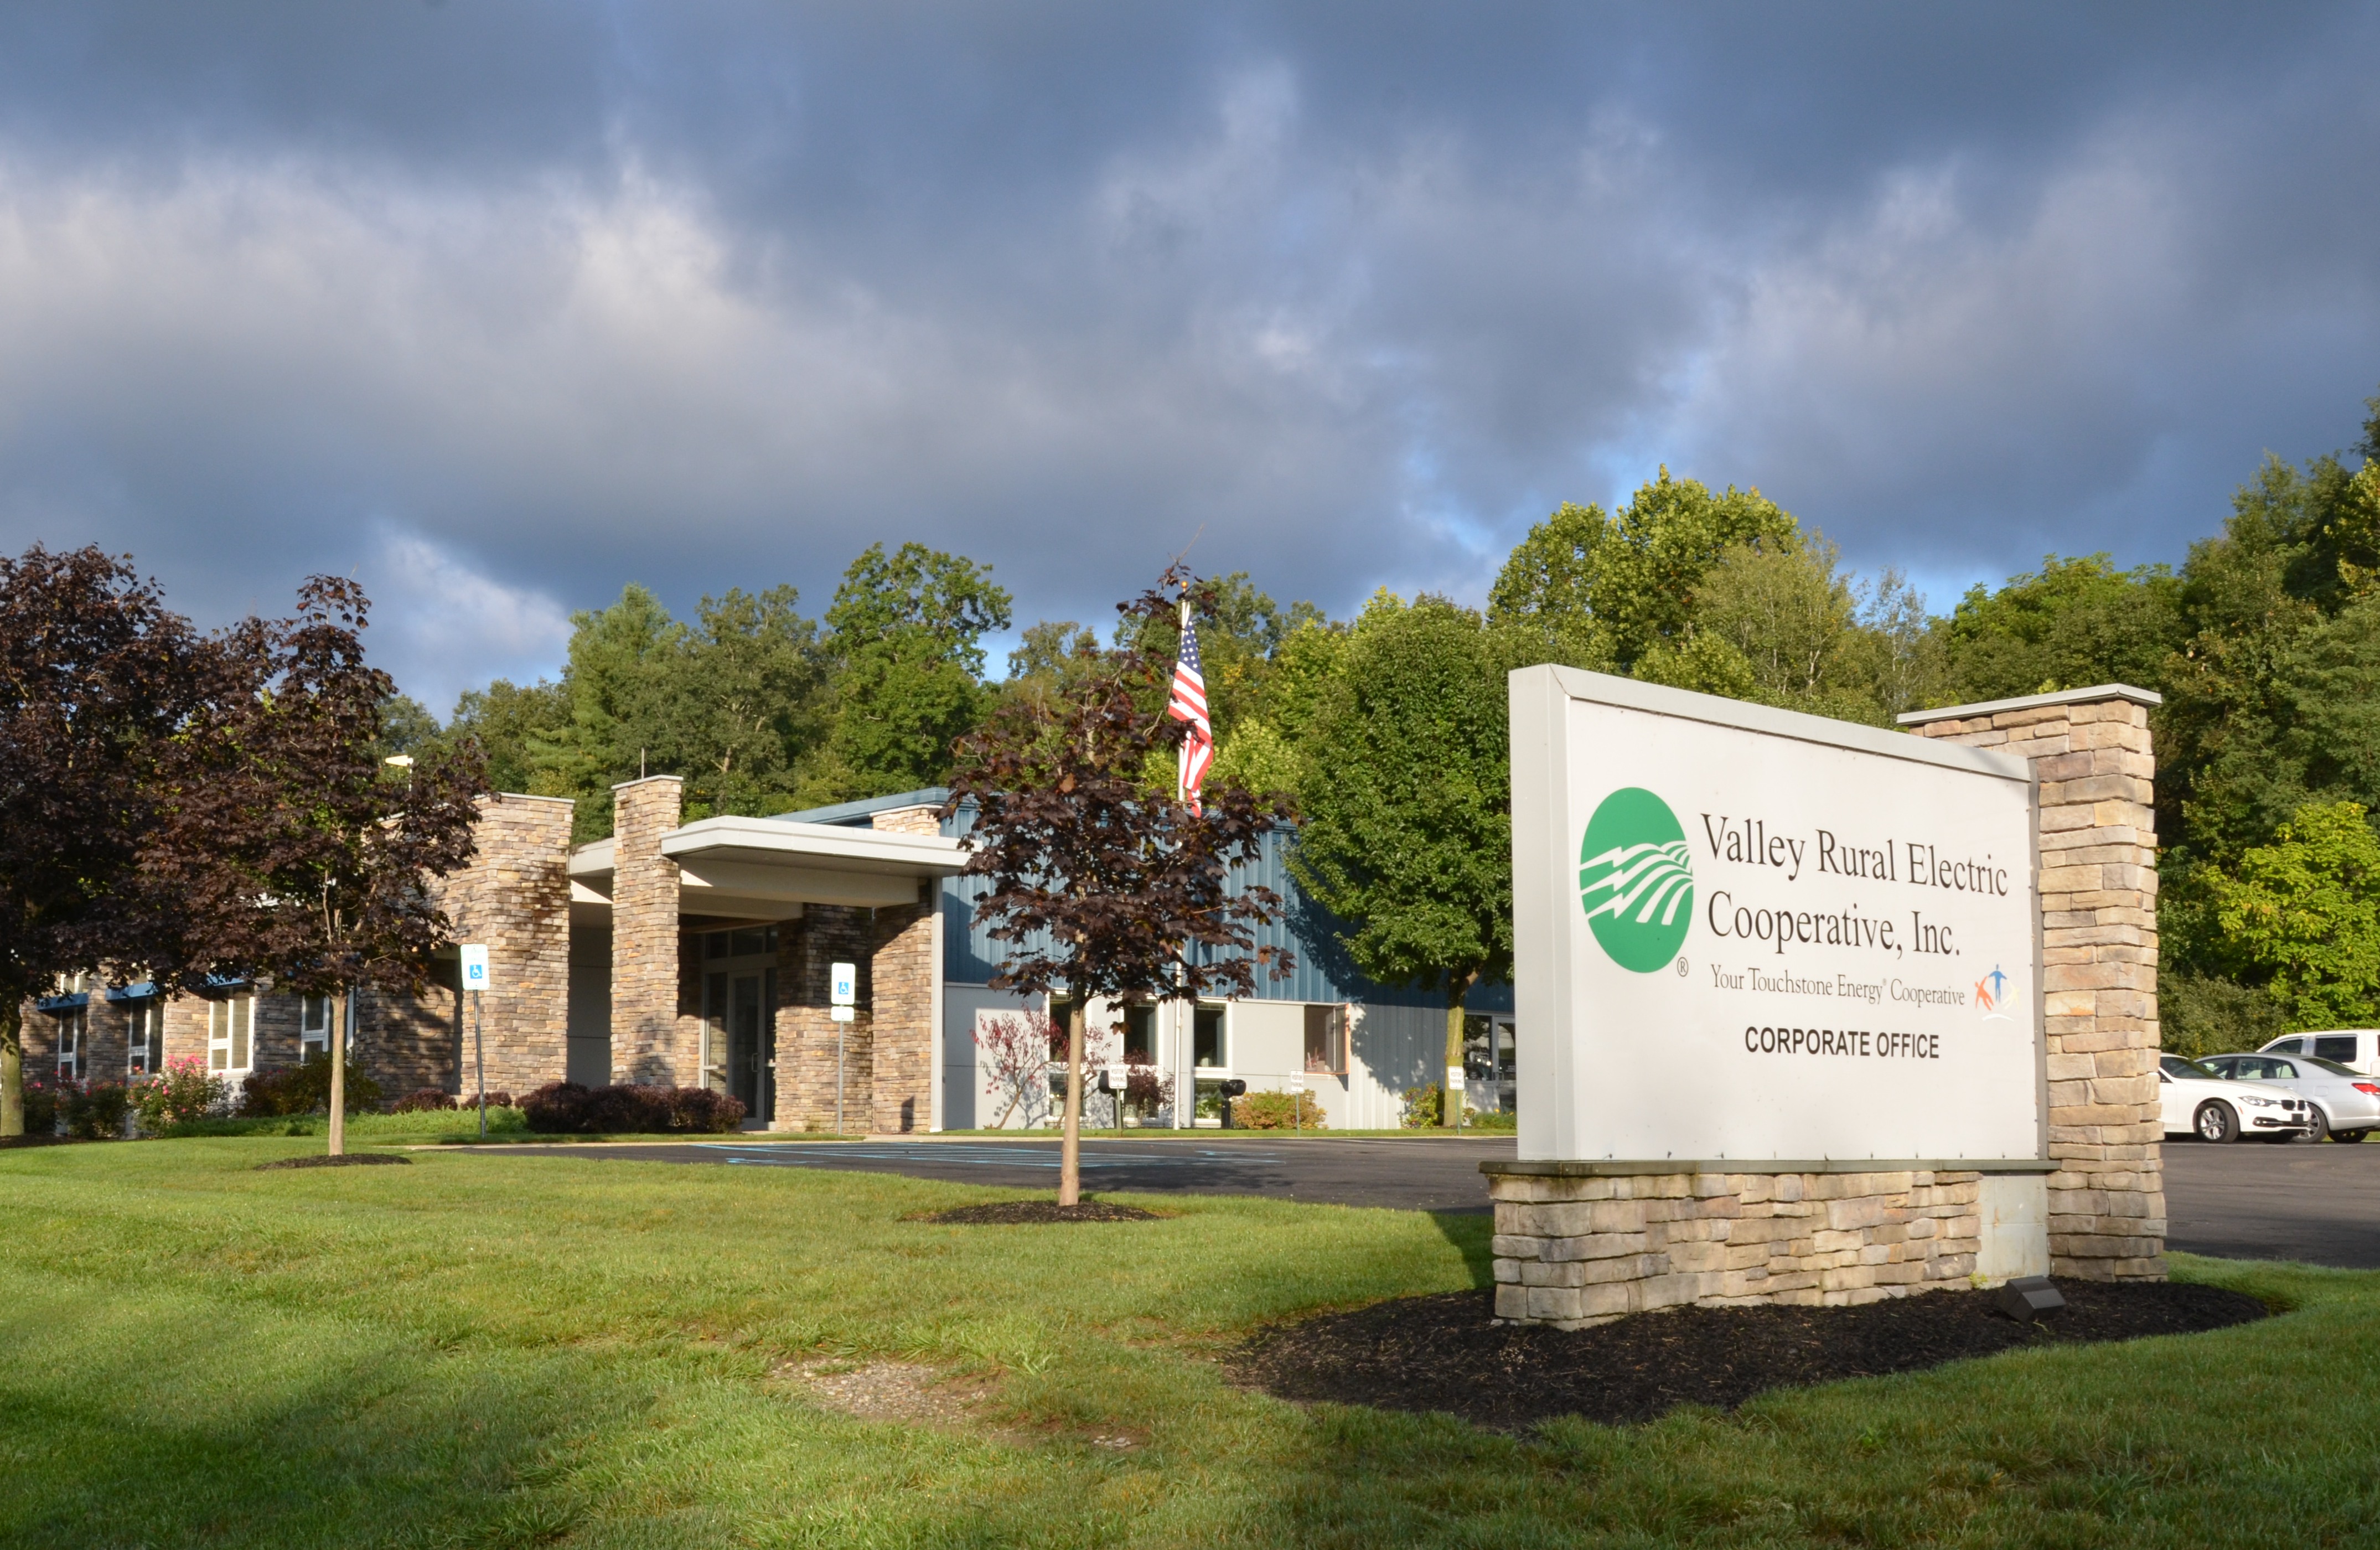 Valley Rural Electric Cooperative corporate office and sign